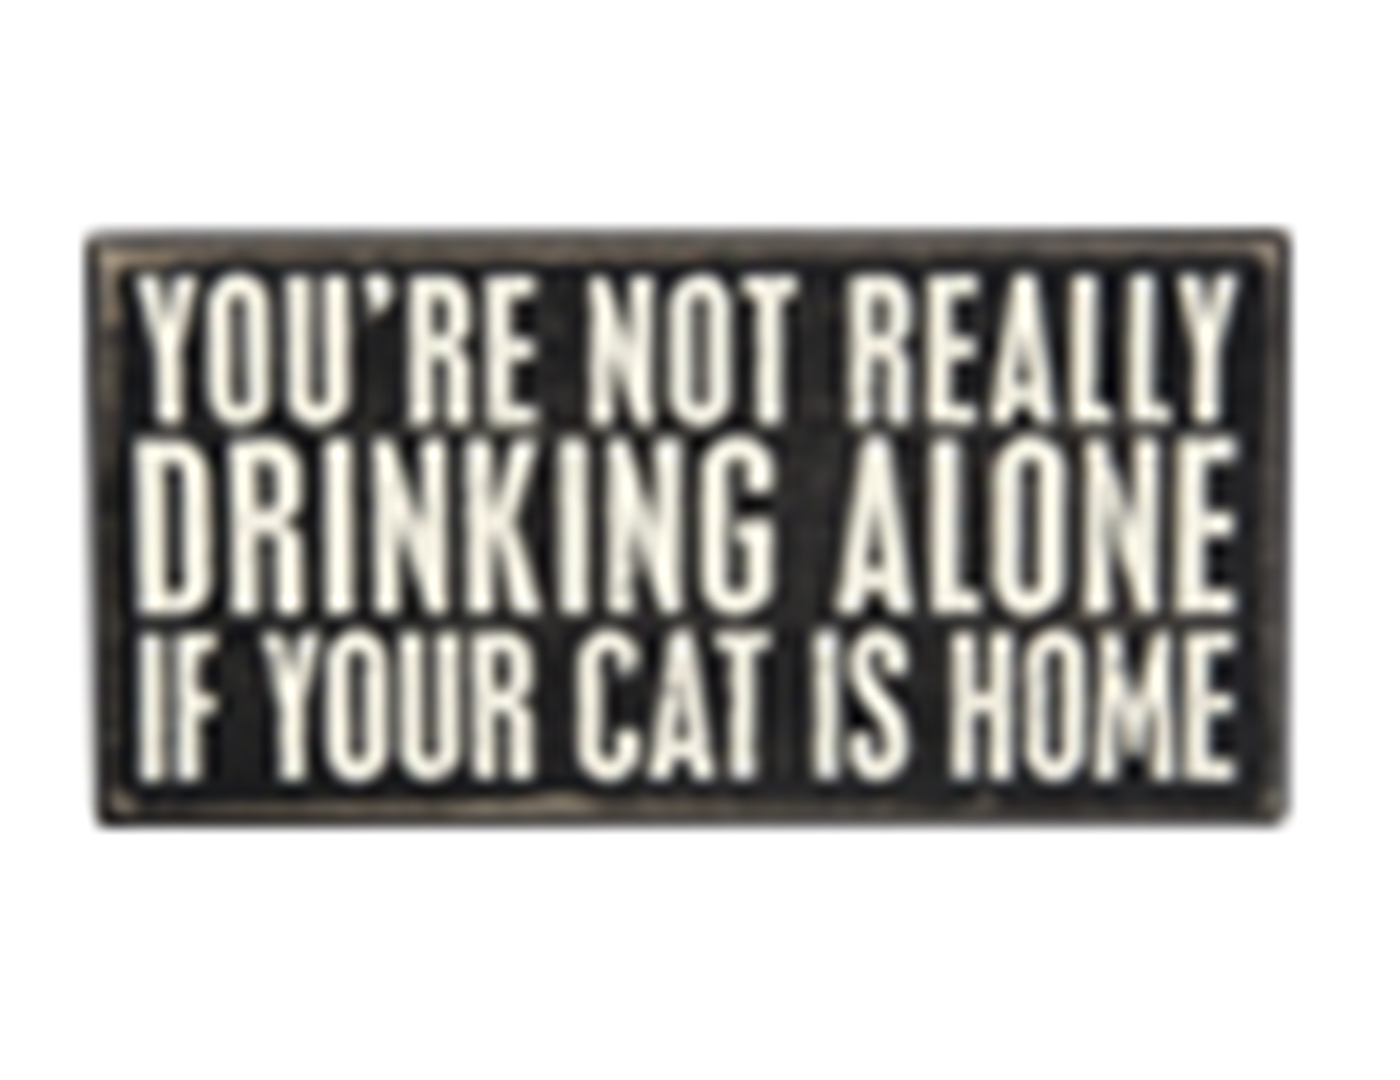 You're Not Really Drinking Alone Sign 8X4""